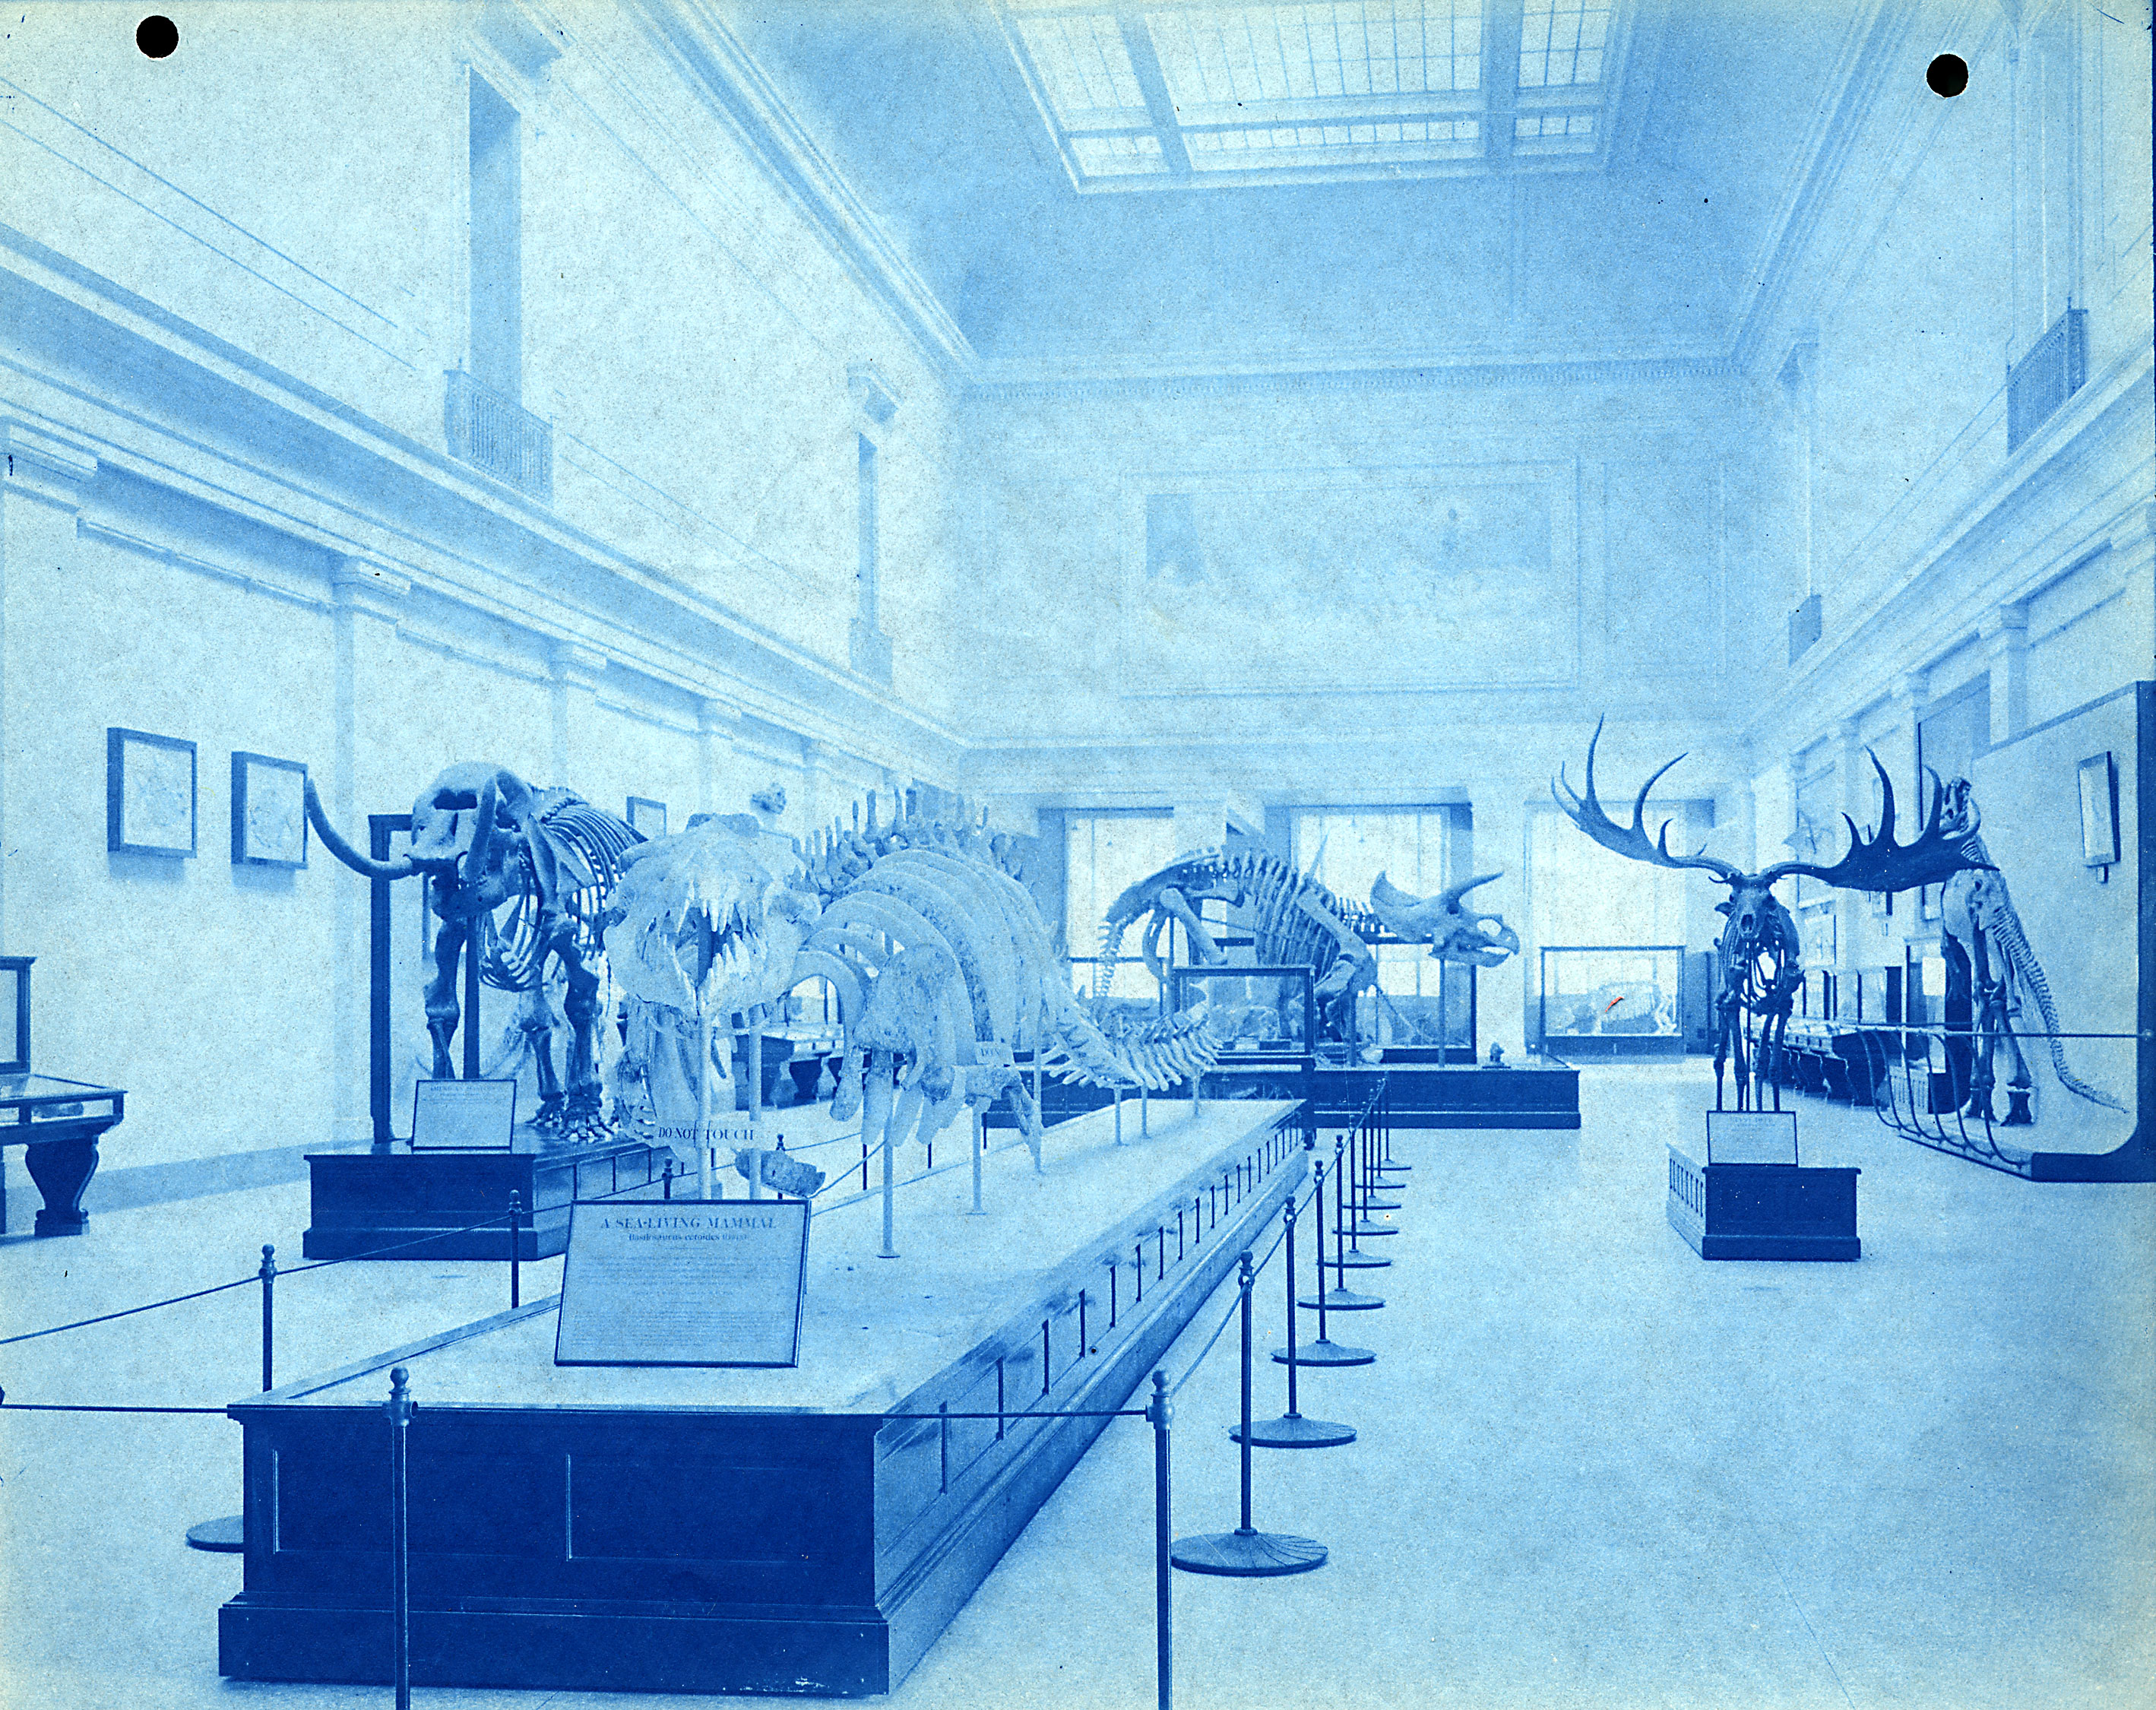 Blue-tinted image of animals on display.